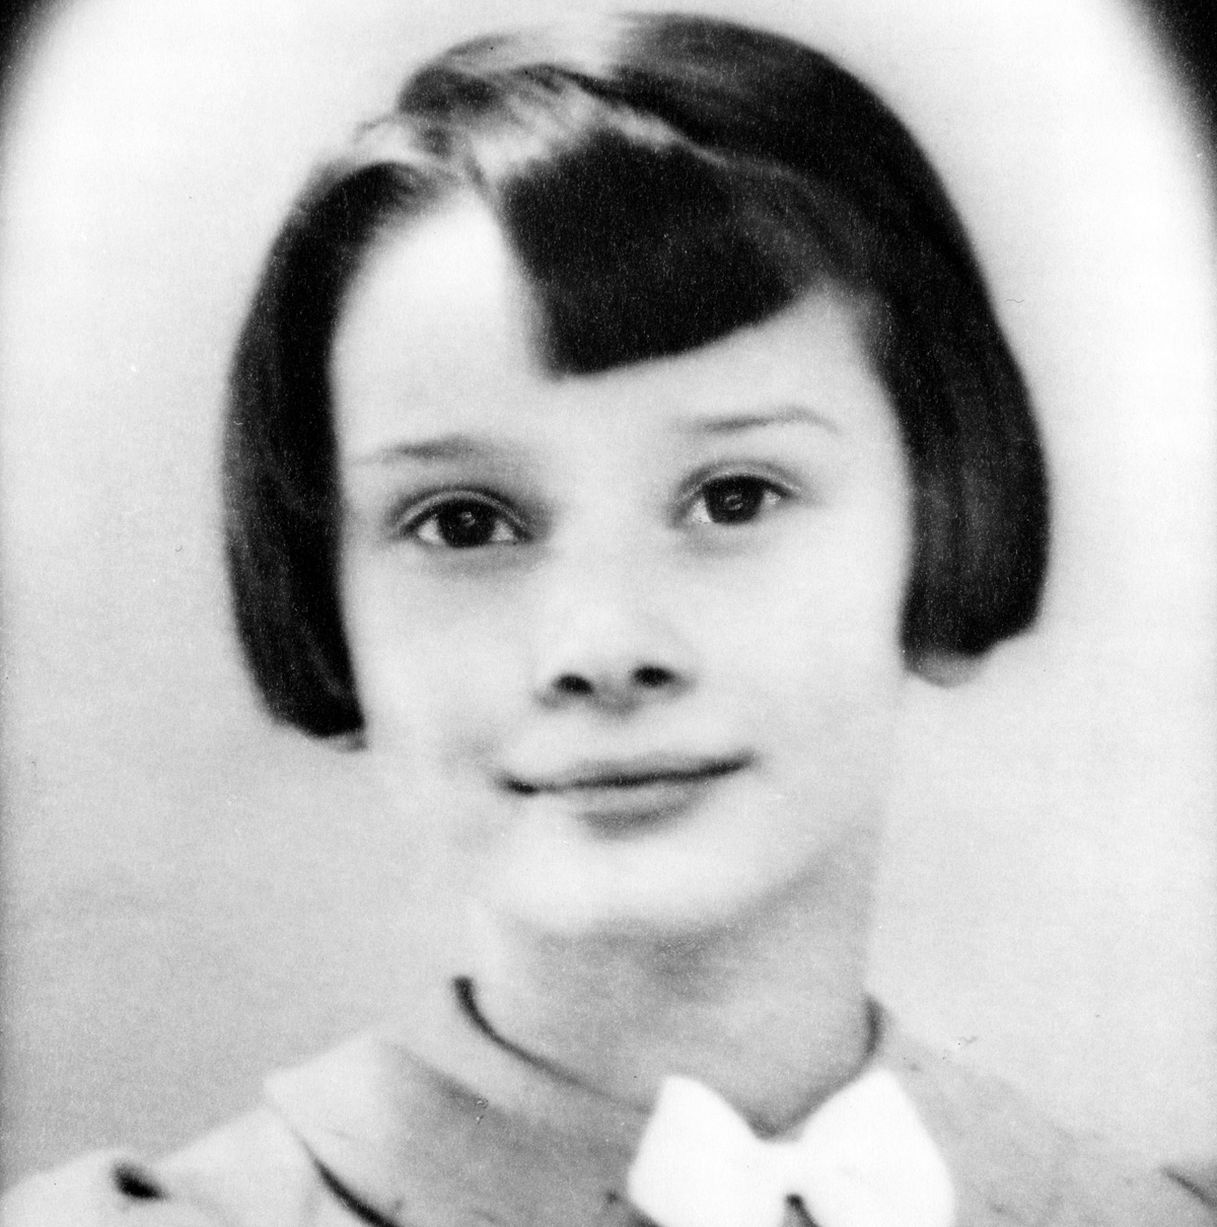 Audrey Hepburn as a child